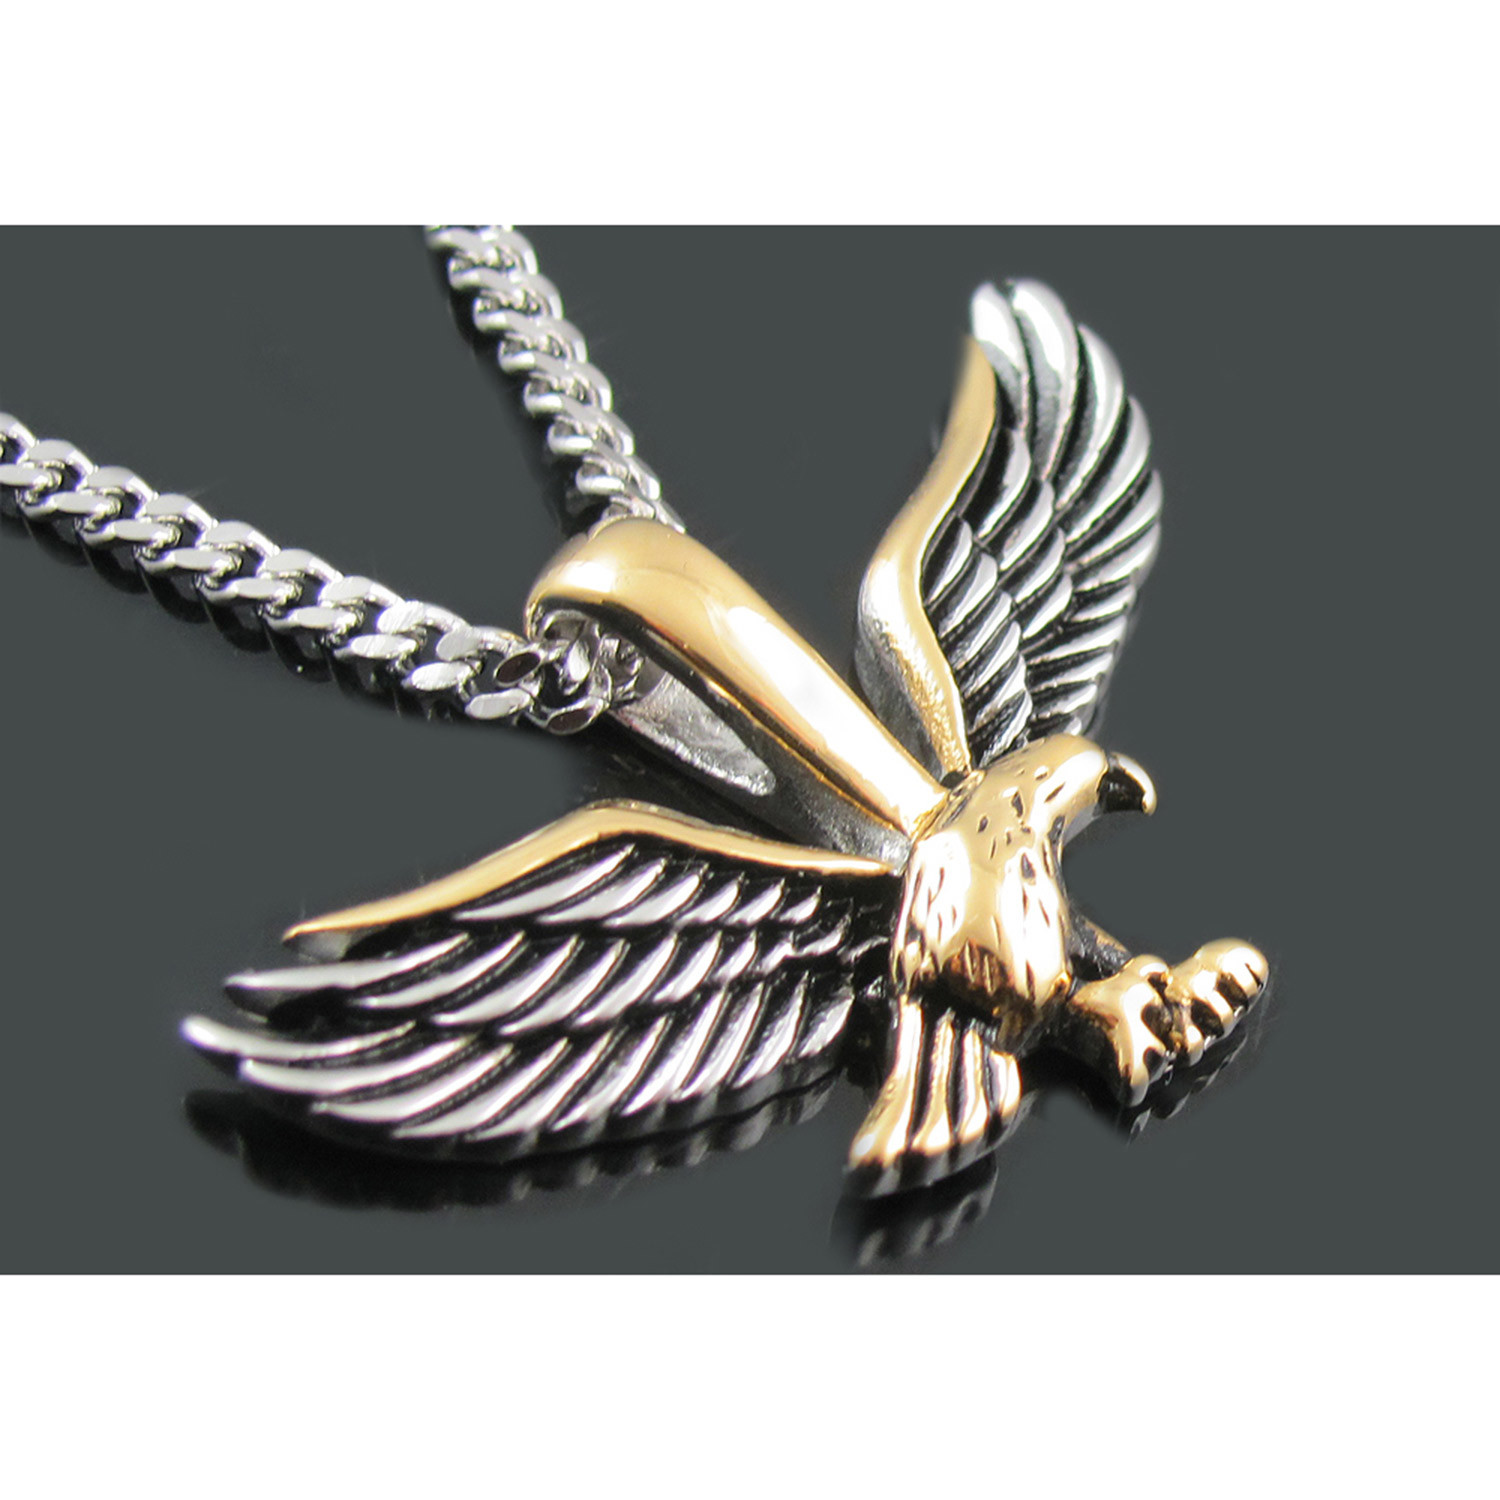 antique co steel gold s silver stainless men necklace jewellery chain uk jewelry pendant eagle dp amazon